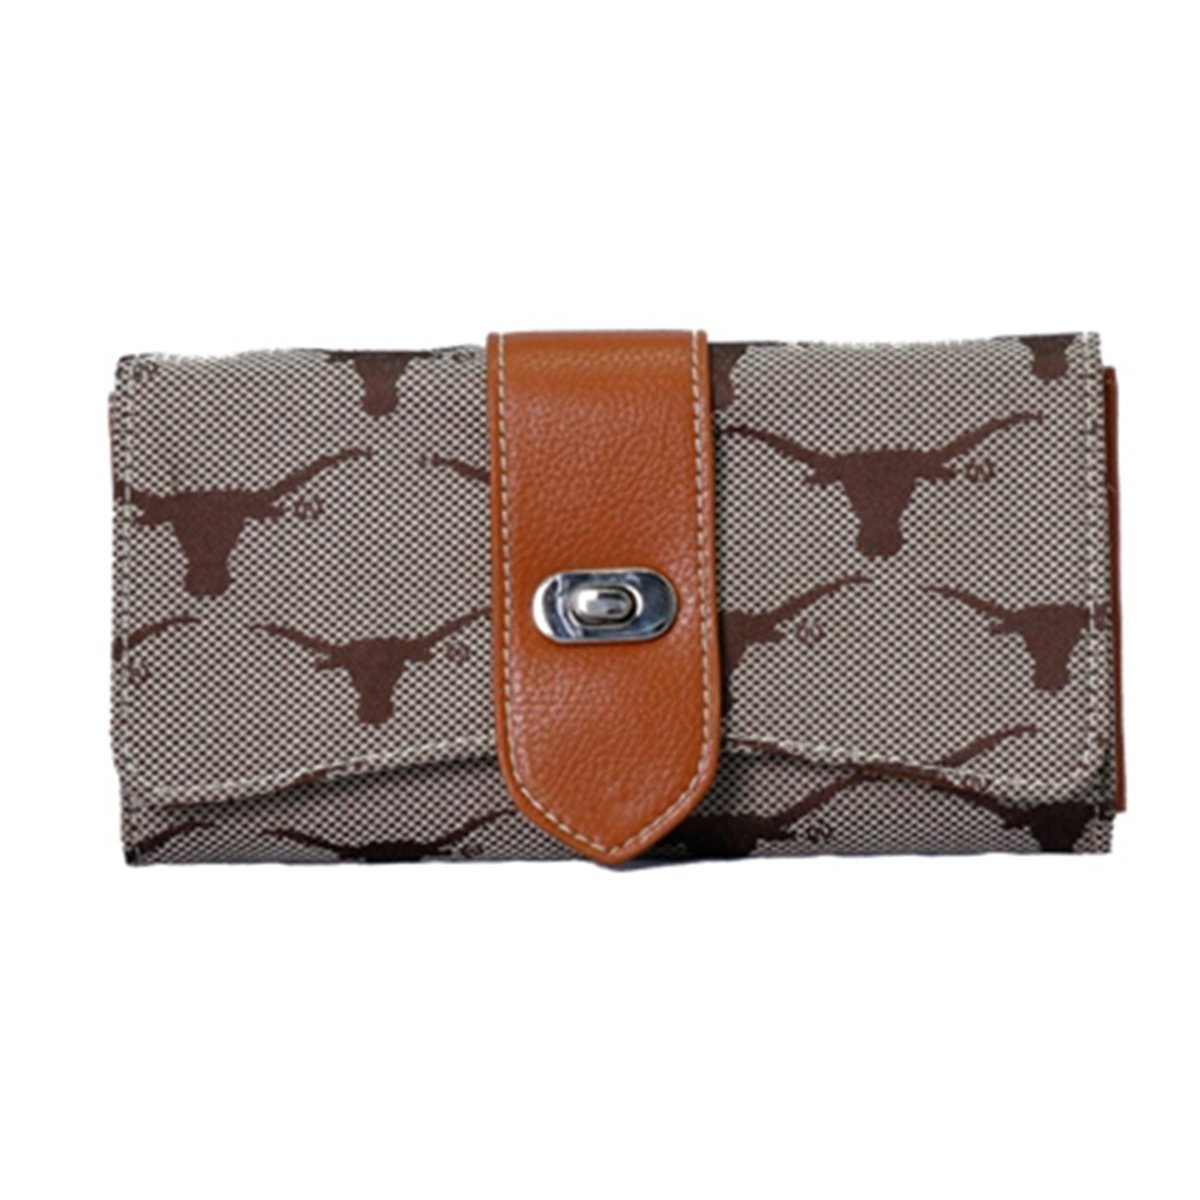 Texas Longhorns Jacquard Fabric Ladies Wallet